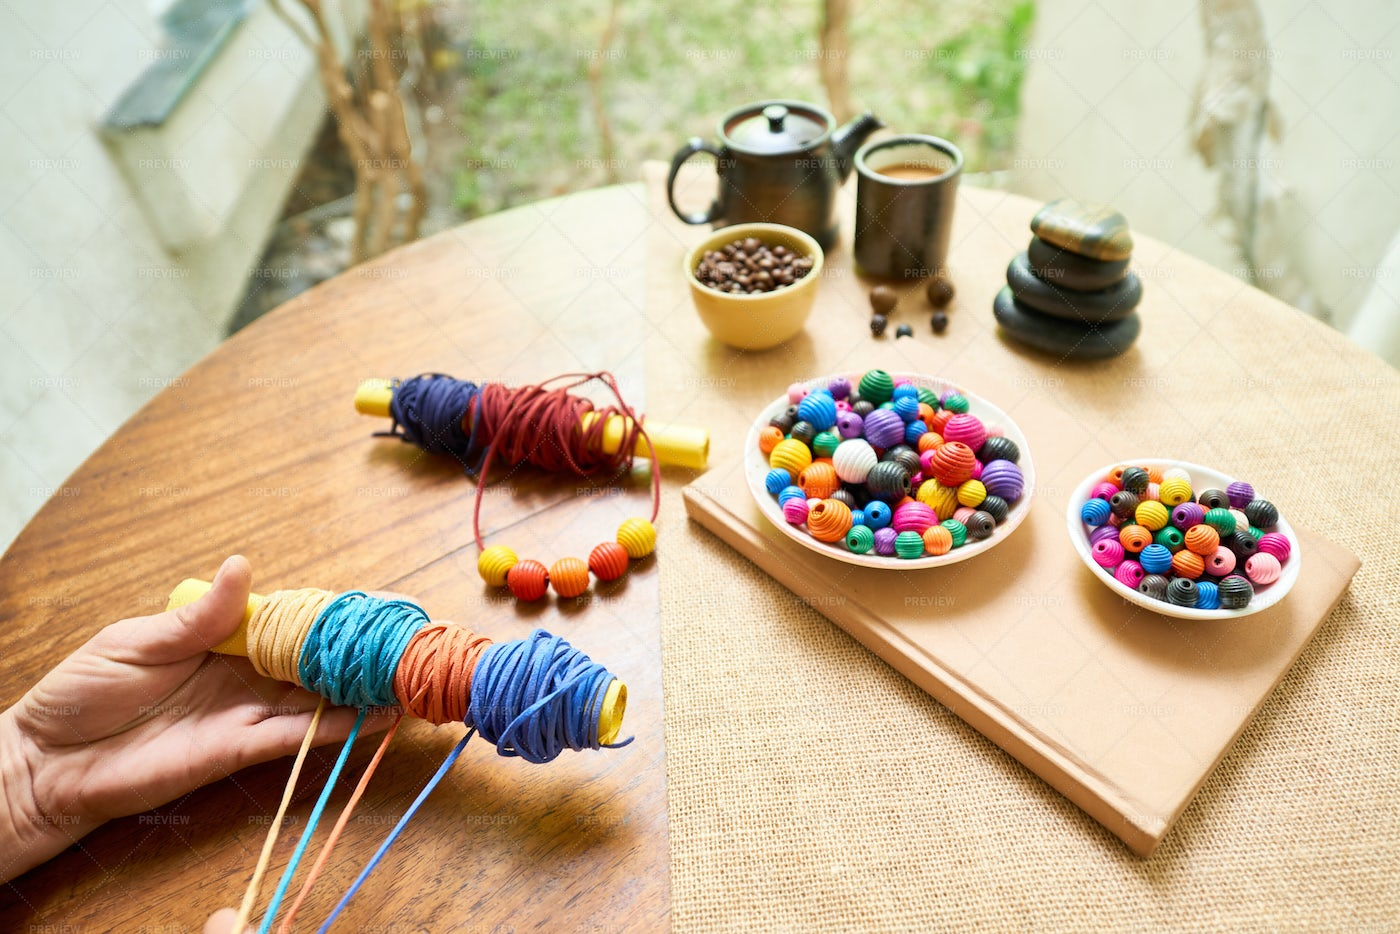 Making Bracelet From Colorful Ropes: Stock Photos